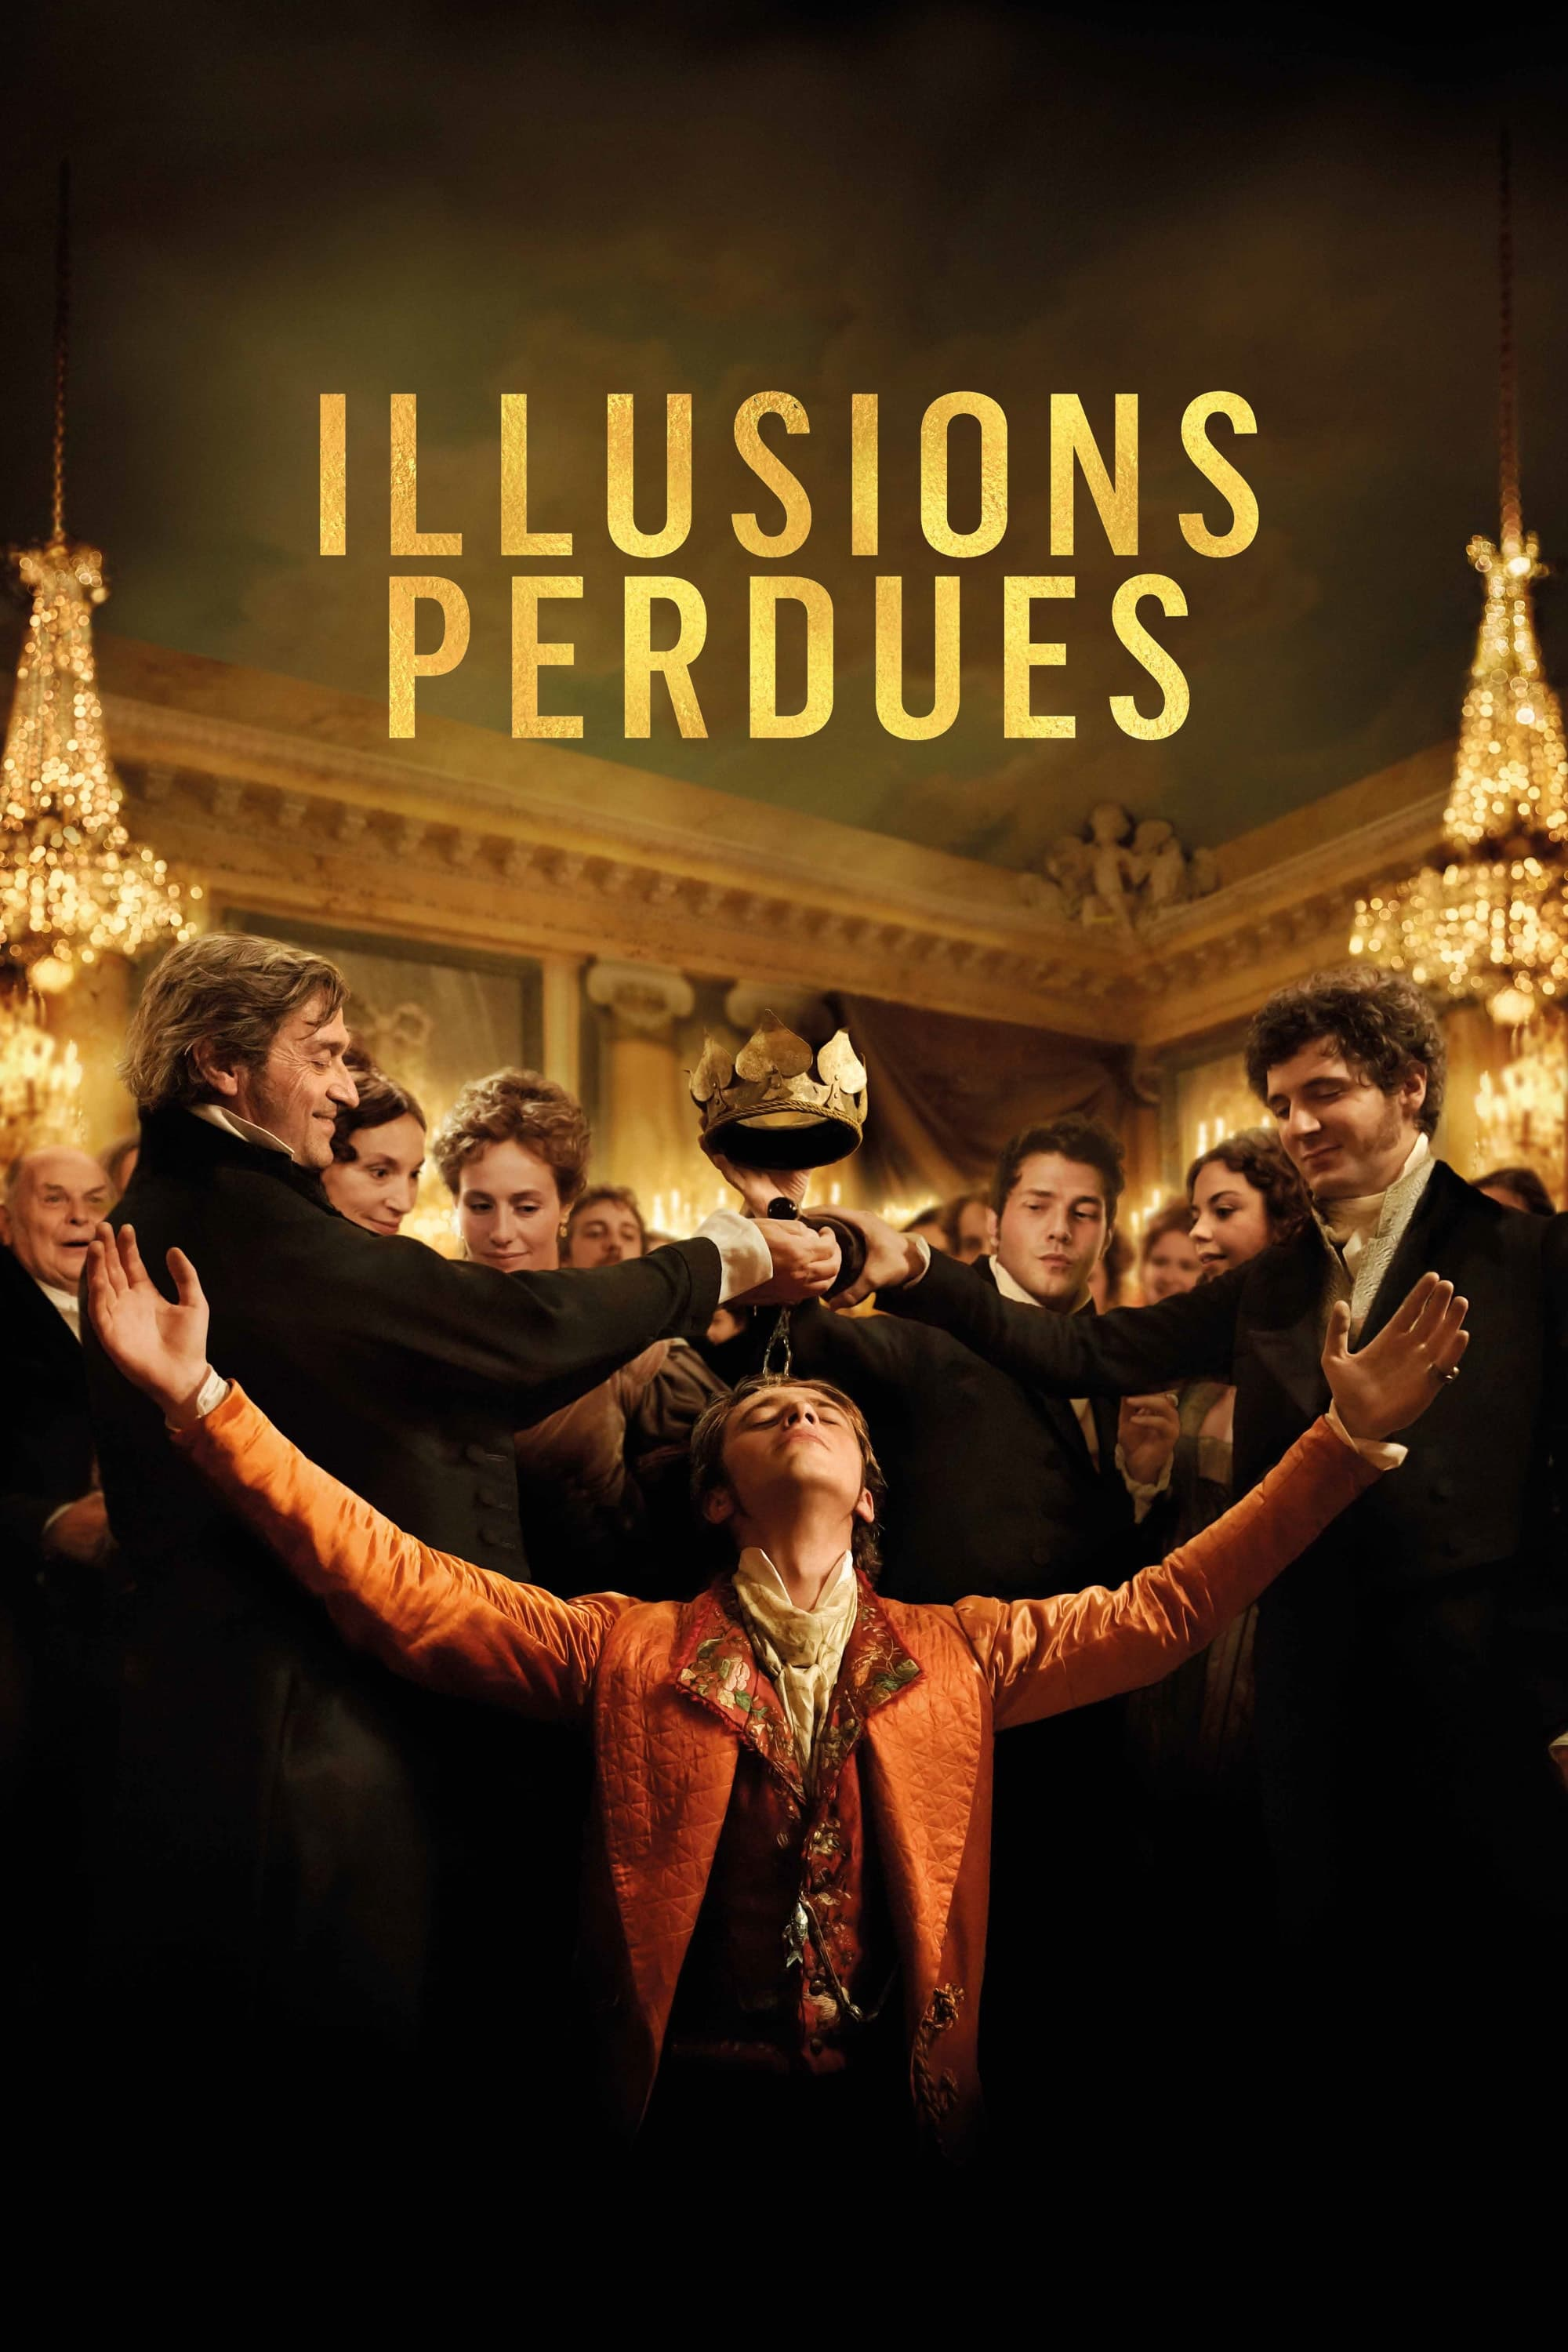 Illusions perdues poster